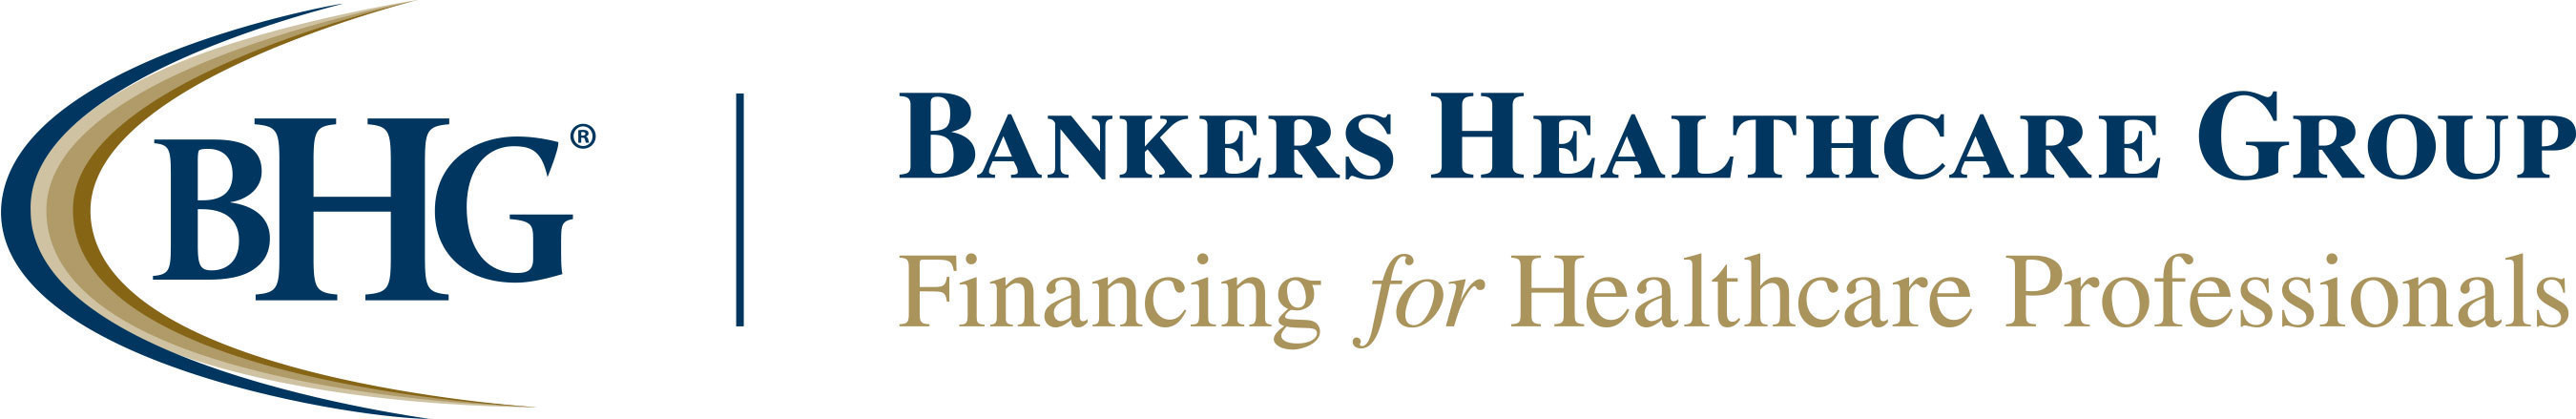 Since 2001, Bankers Healthcare Group has been committed to providing hassle-free financial solutions to healthcare professionals, including working capital loans, credit cards and insurance services. (PRNewsFoto/Bankers Healthcare Group)